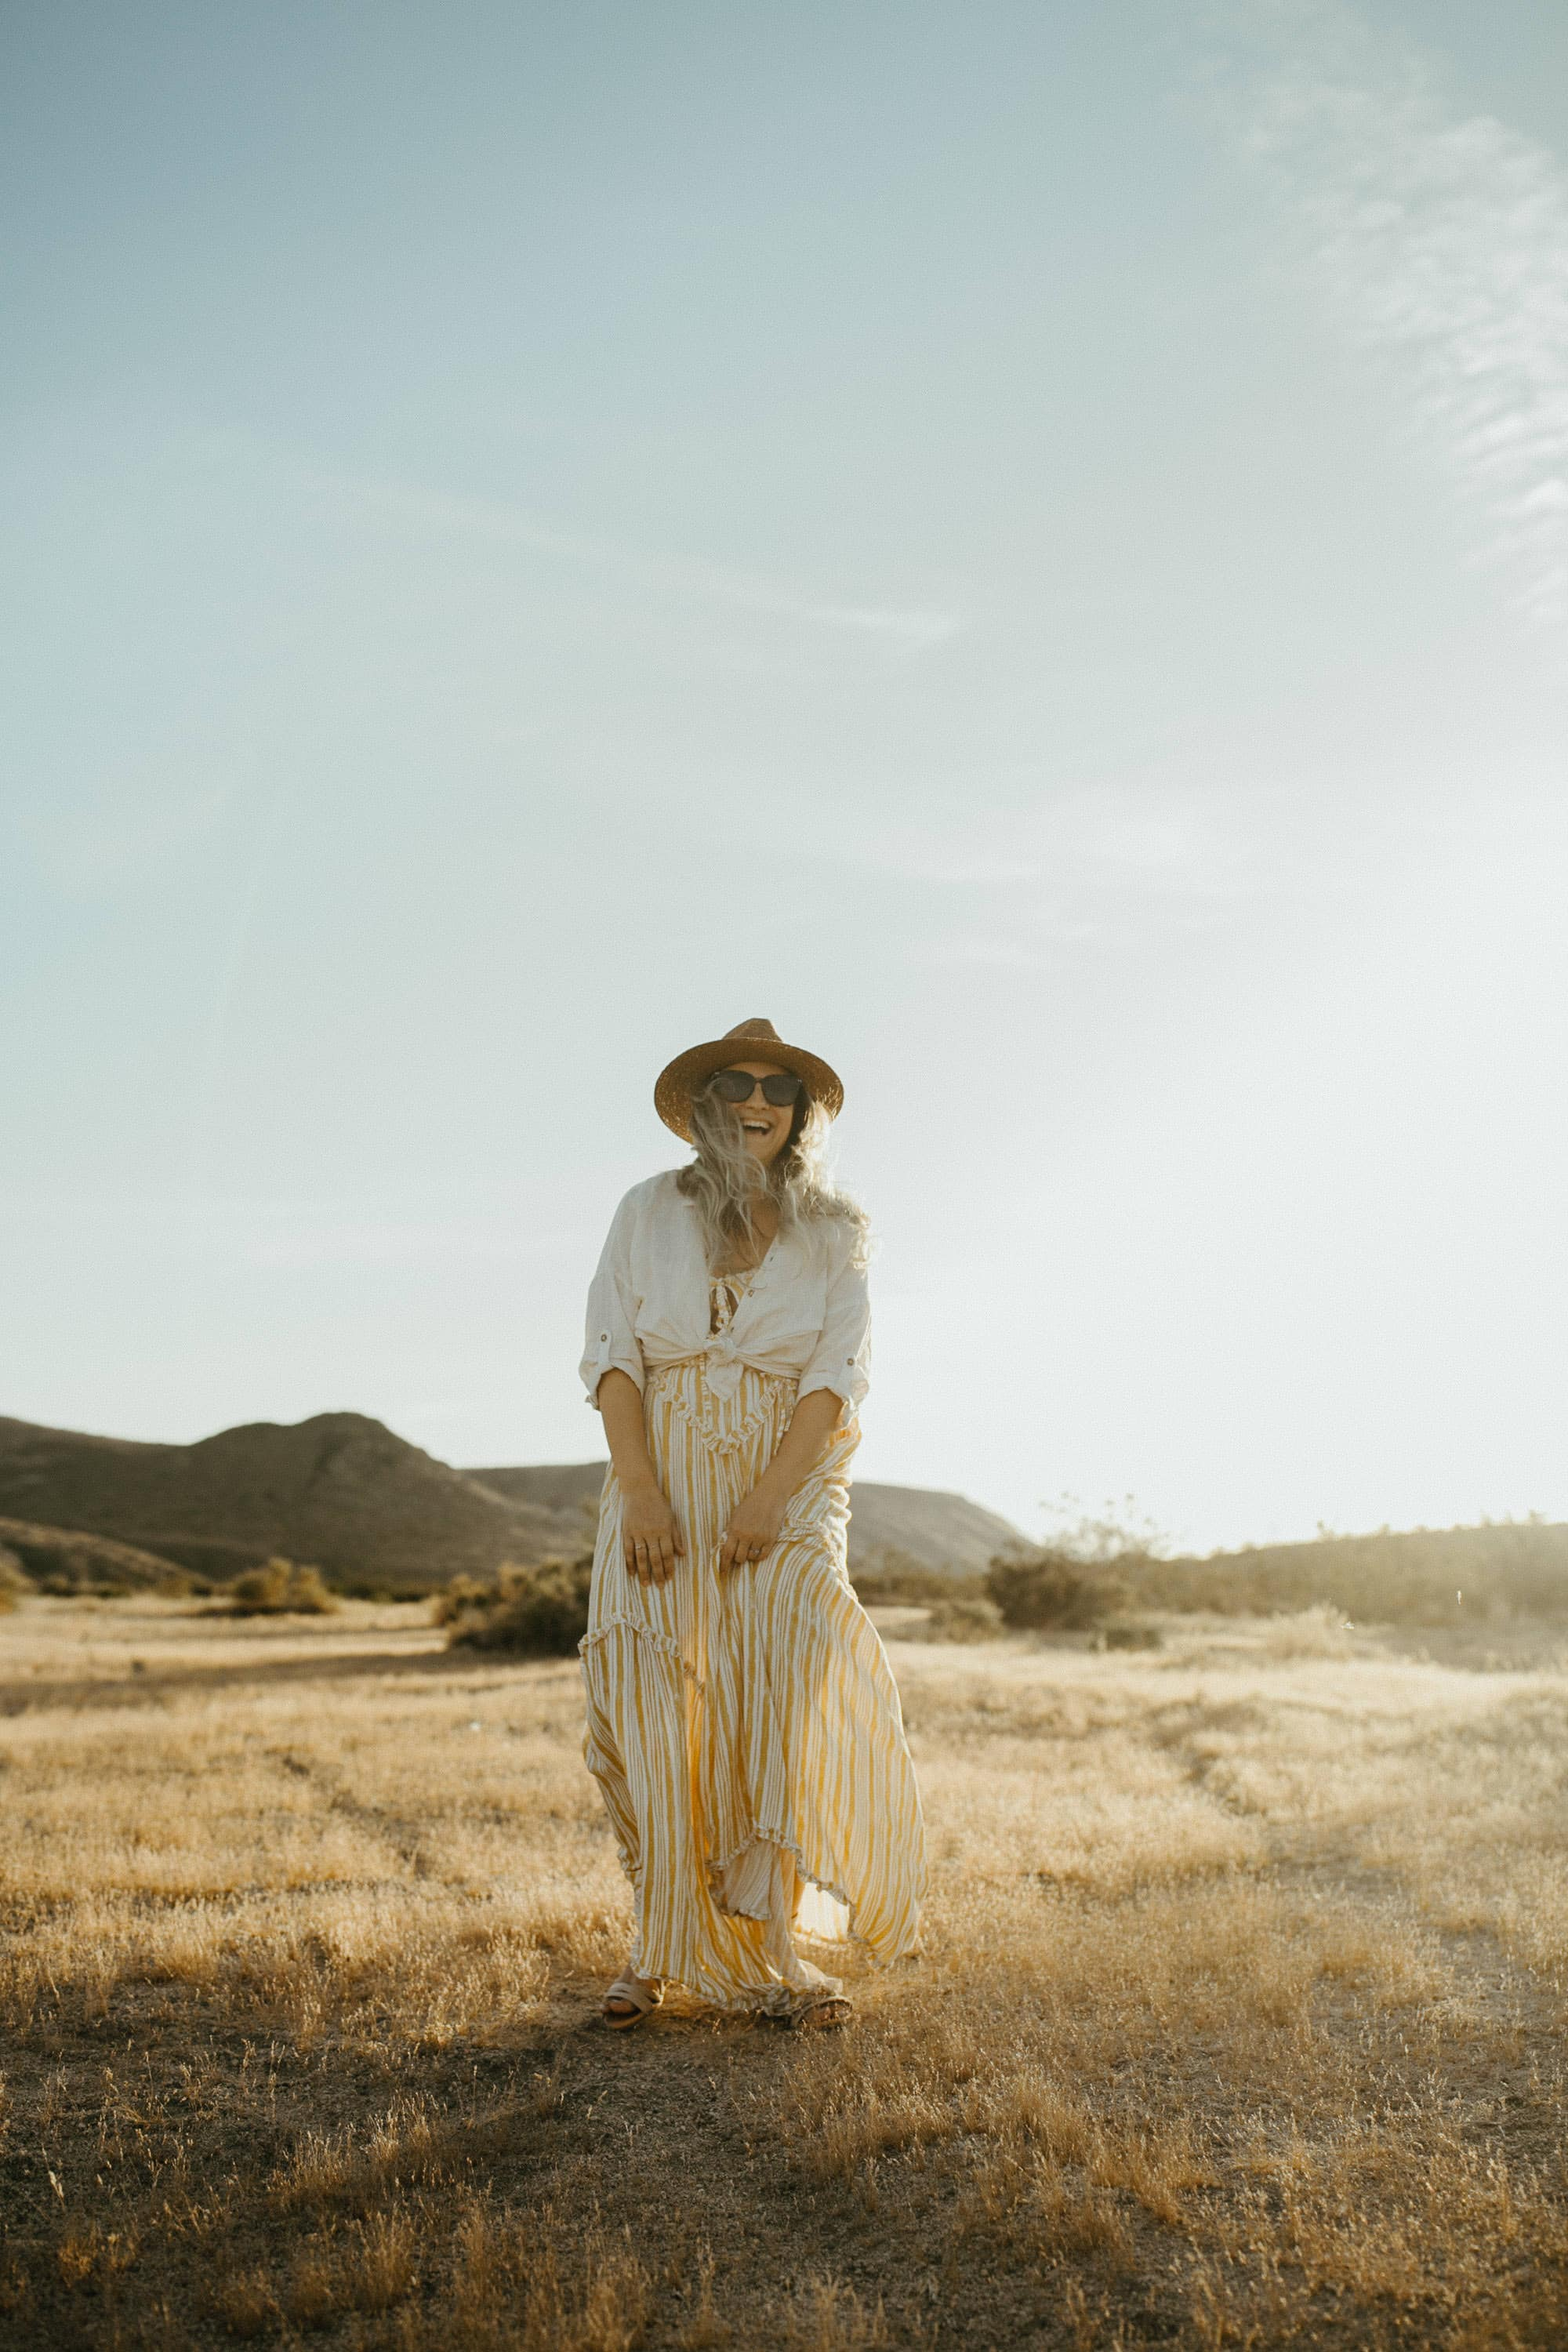 portrait of a girl in the desert